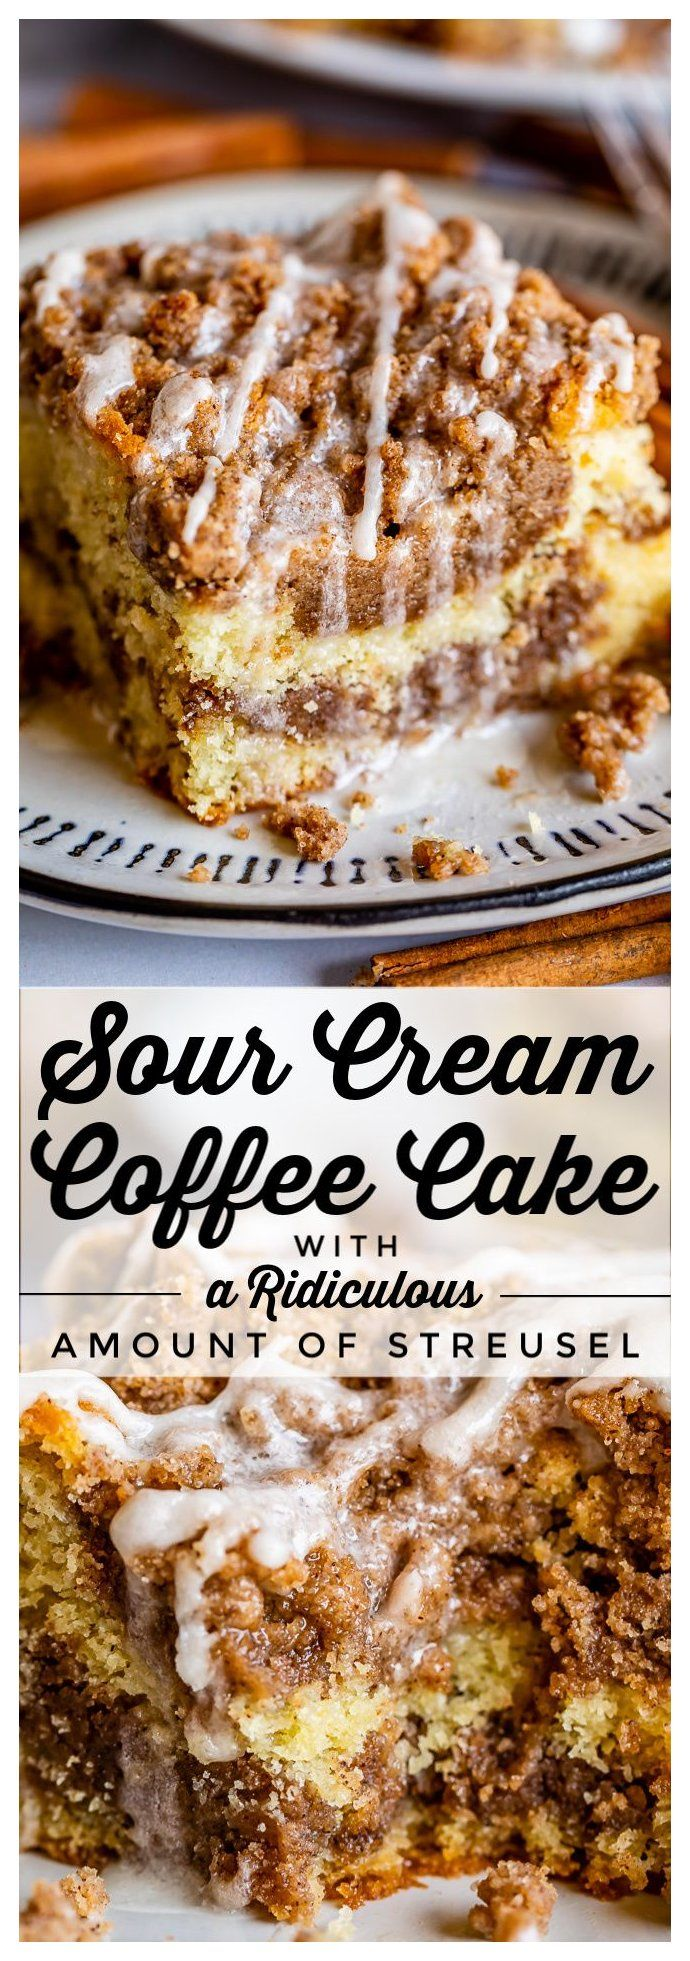 Sour Cream Coffee Cake With A Ridiculous Amount Of Streusel From The Food Charlatan Best In 2020 Coffee Cake Recipes Easy Sour Cream Recipes Sour Cream Coffee Cake